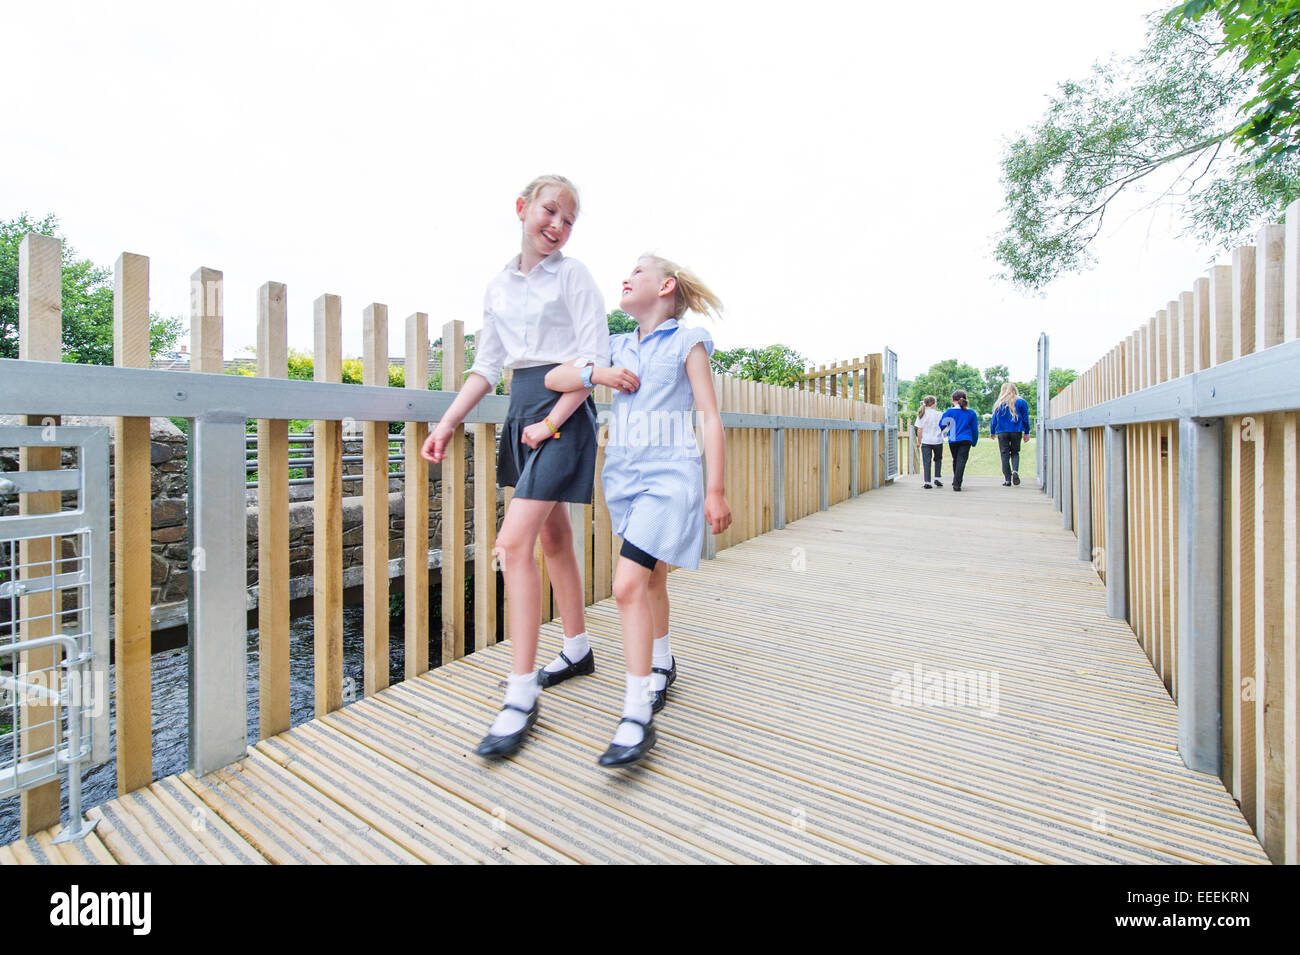 Kids at play in school - Stock Image